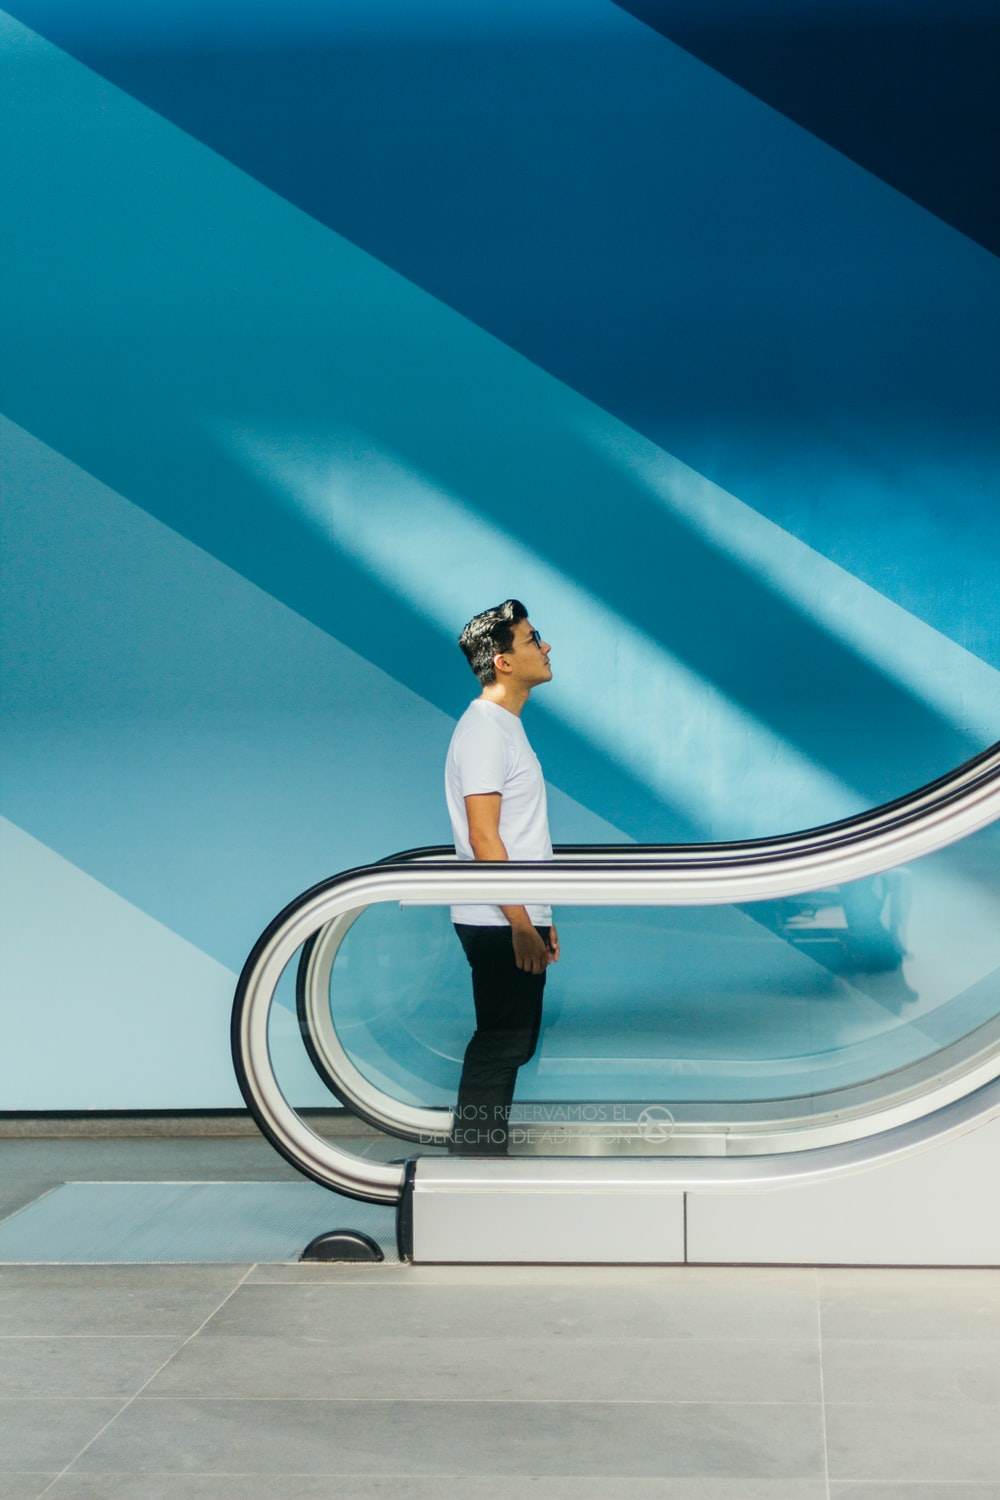 man standing on stairs